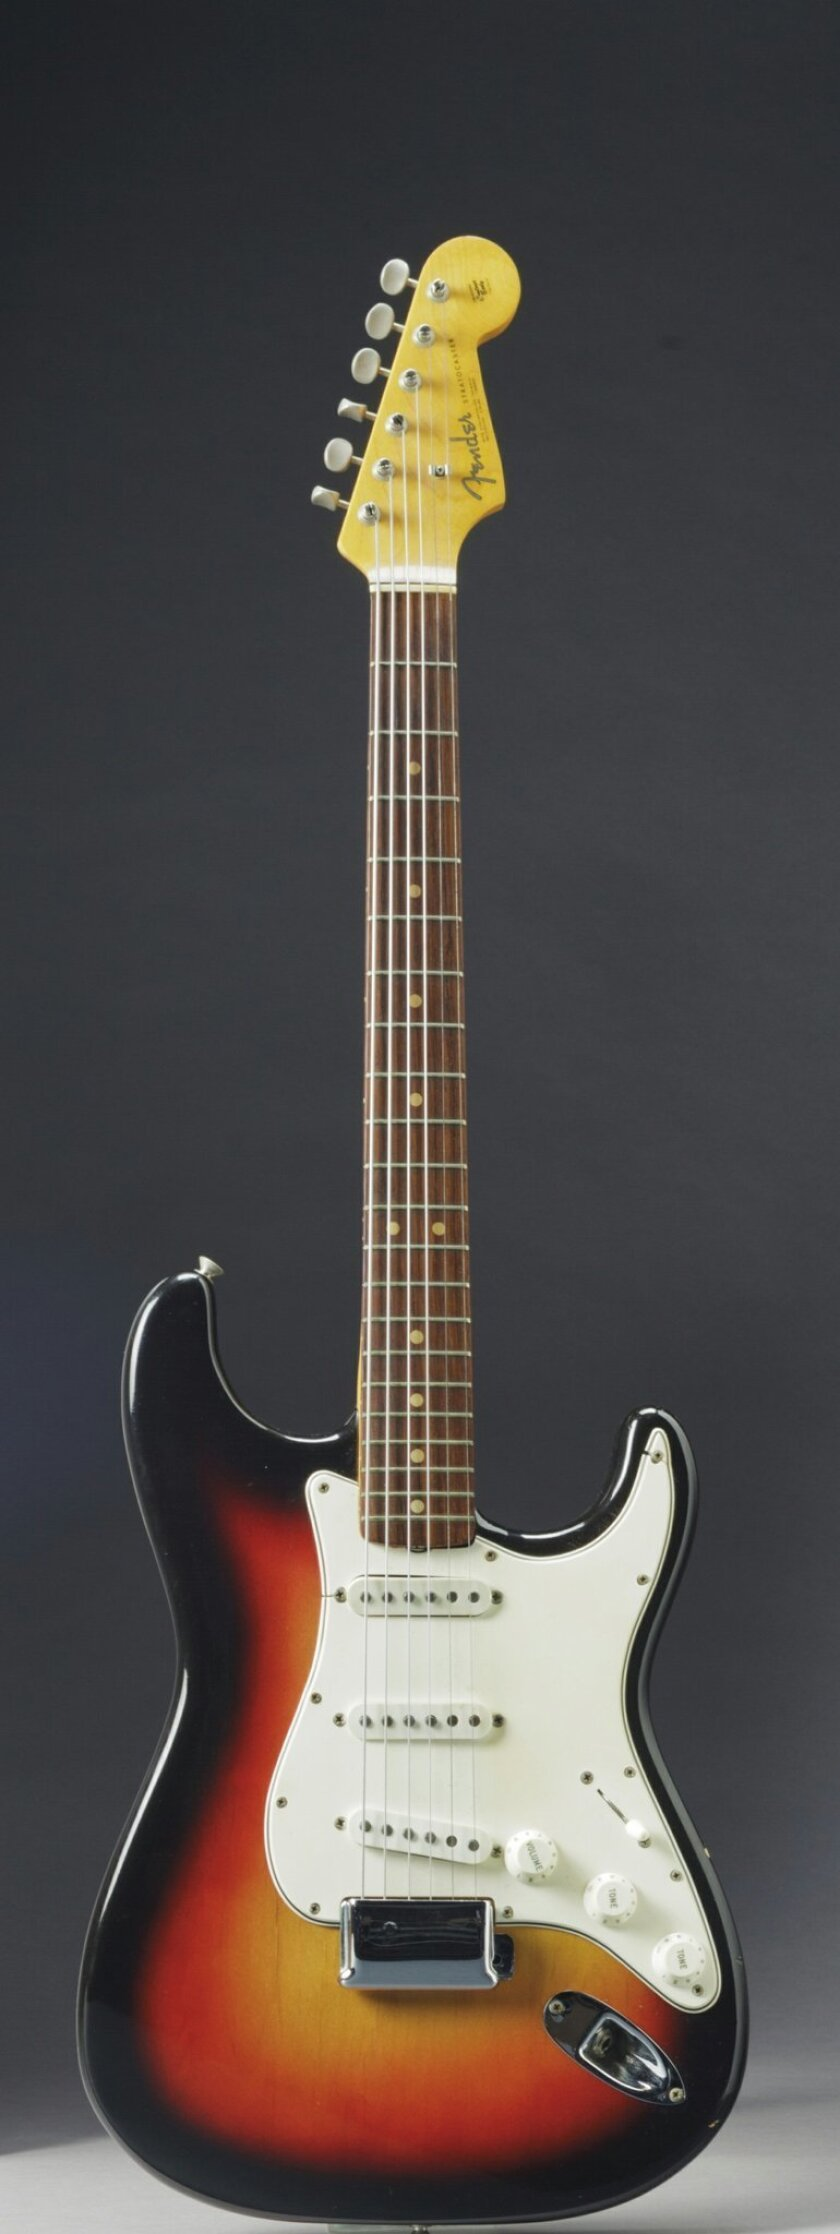 This undated photo provided by Christie's shows the Fender Stratocaster a young Bob Dylan played at the historic 1965 Newport Folk Festival. On Dec. 6, 2013, it could bring as much as half a million dollars when it comes up for auction at Christie's New York. The festival marked the first time Dyla